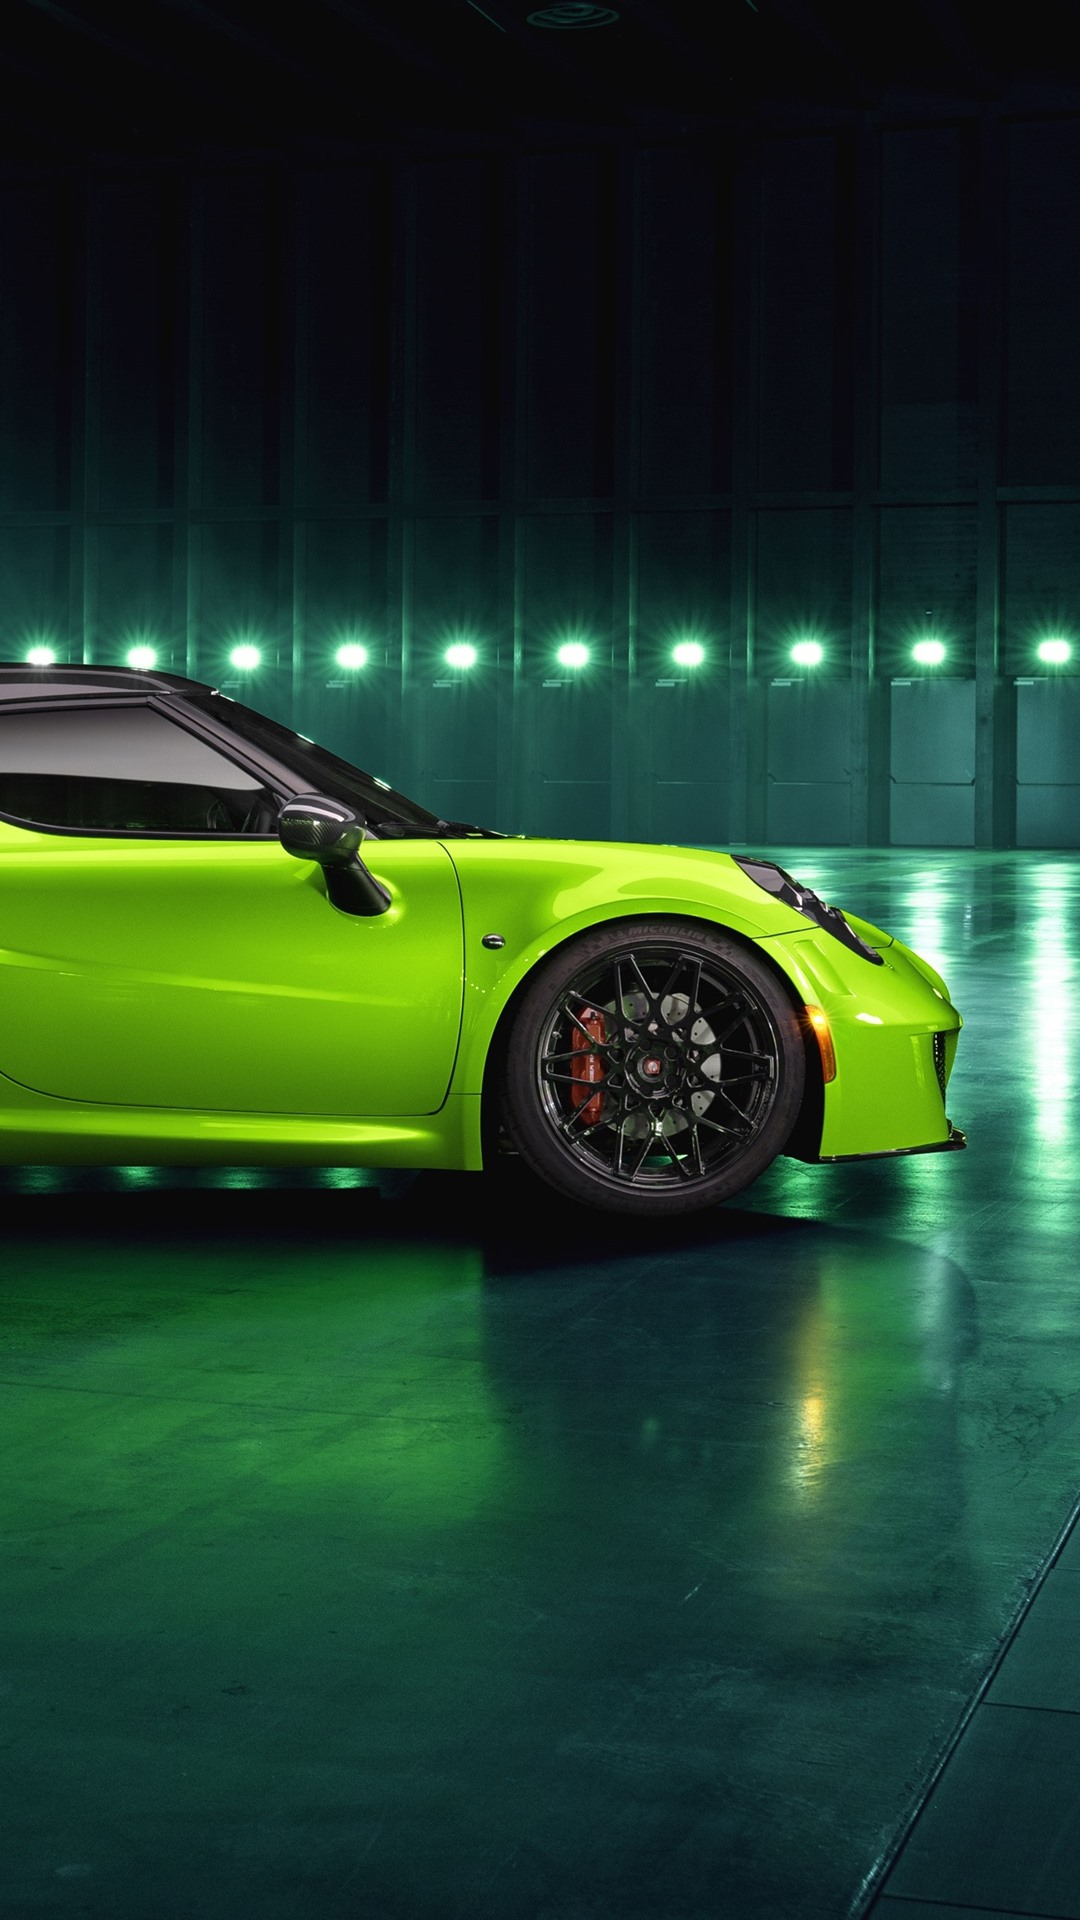 Alfa Romeo 4c Green Car Side View 1080x1920 Iphone 8 7 6 6s